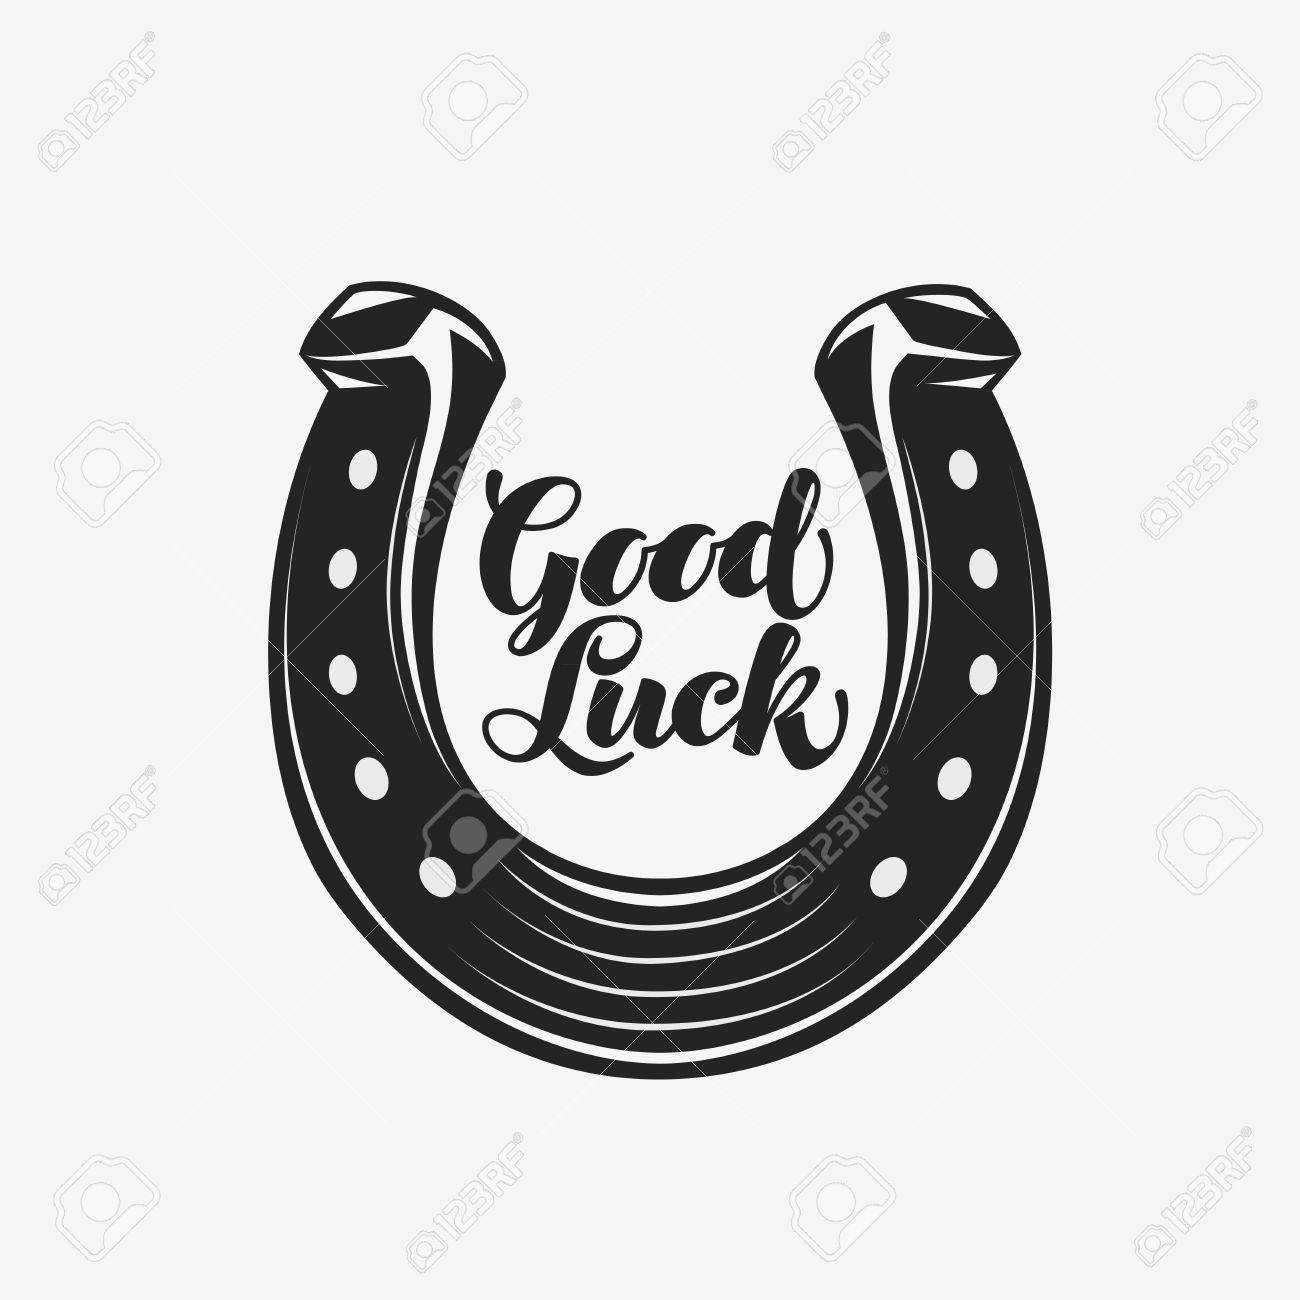 Good luck horseshoe with inscription vector symbol icon royalty good luck horseshoe with inscription vector symbol icon stock vector 67209206 biocorpaavc Choice Image